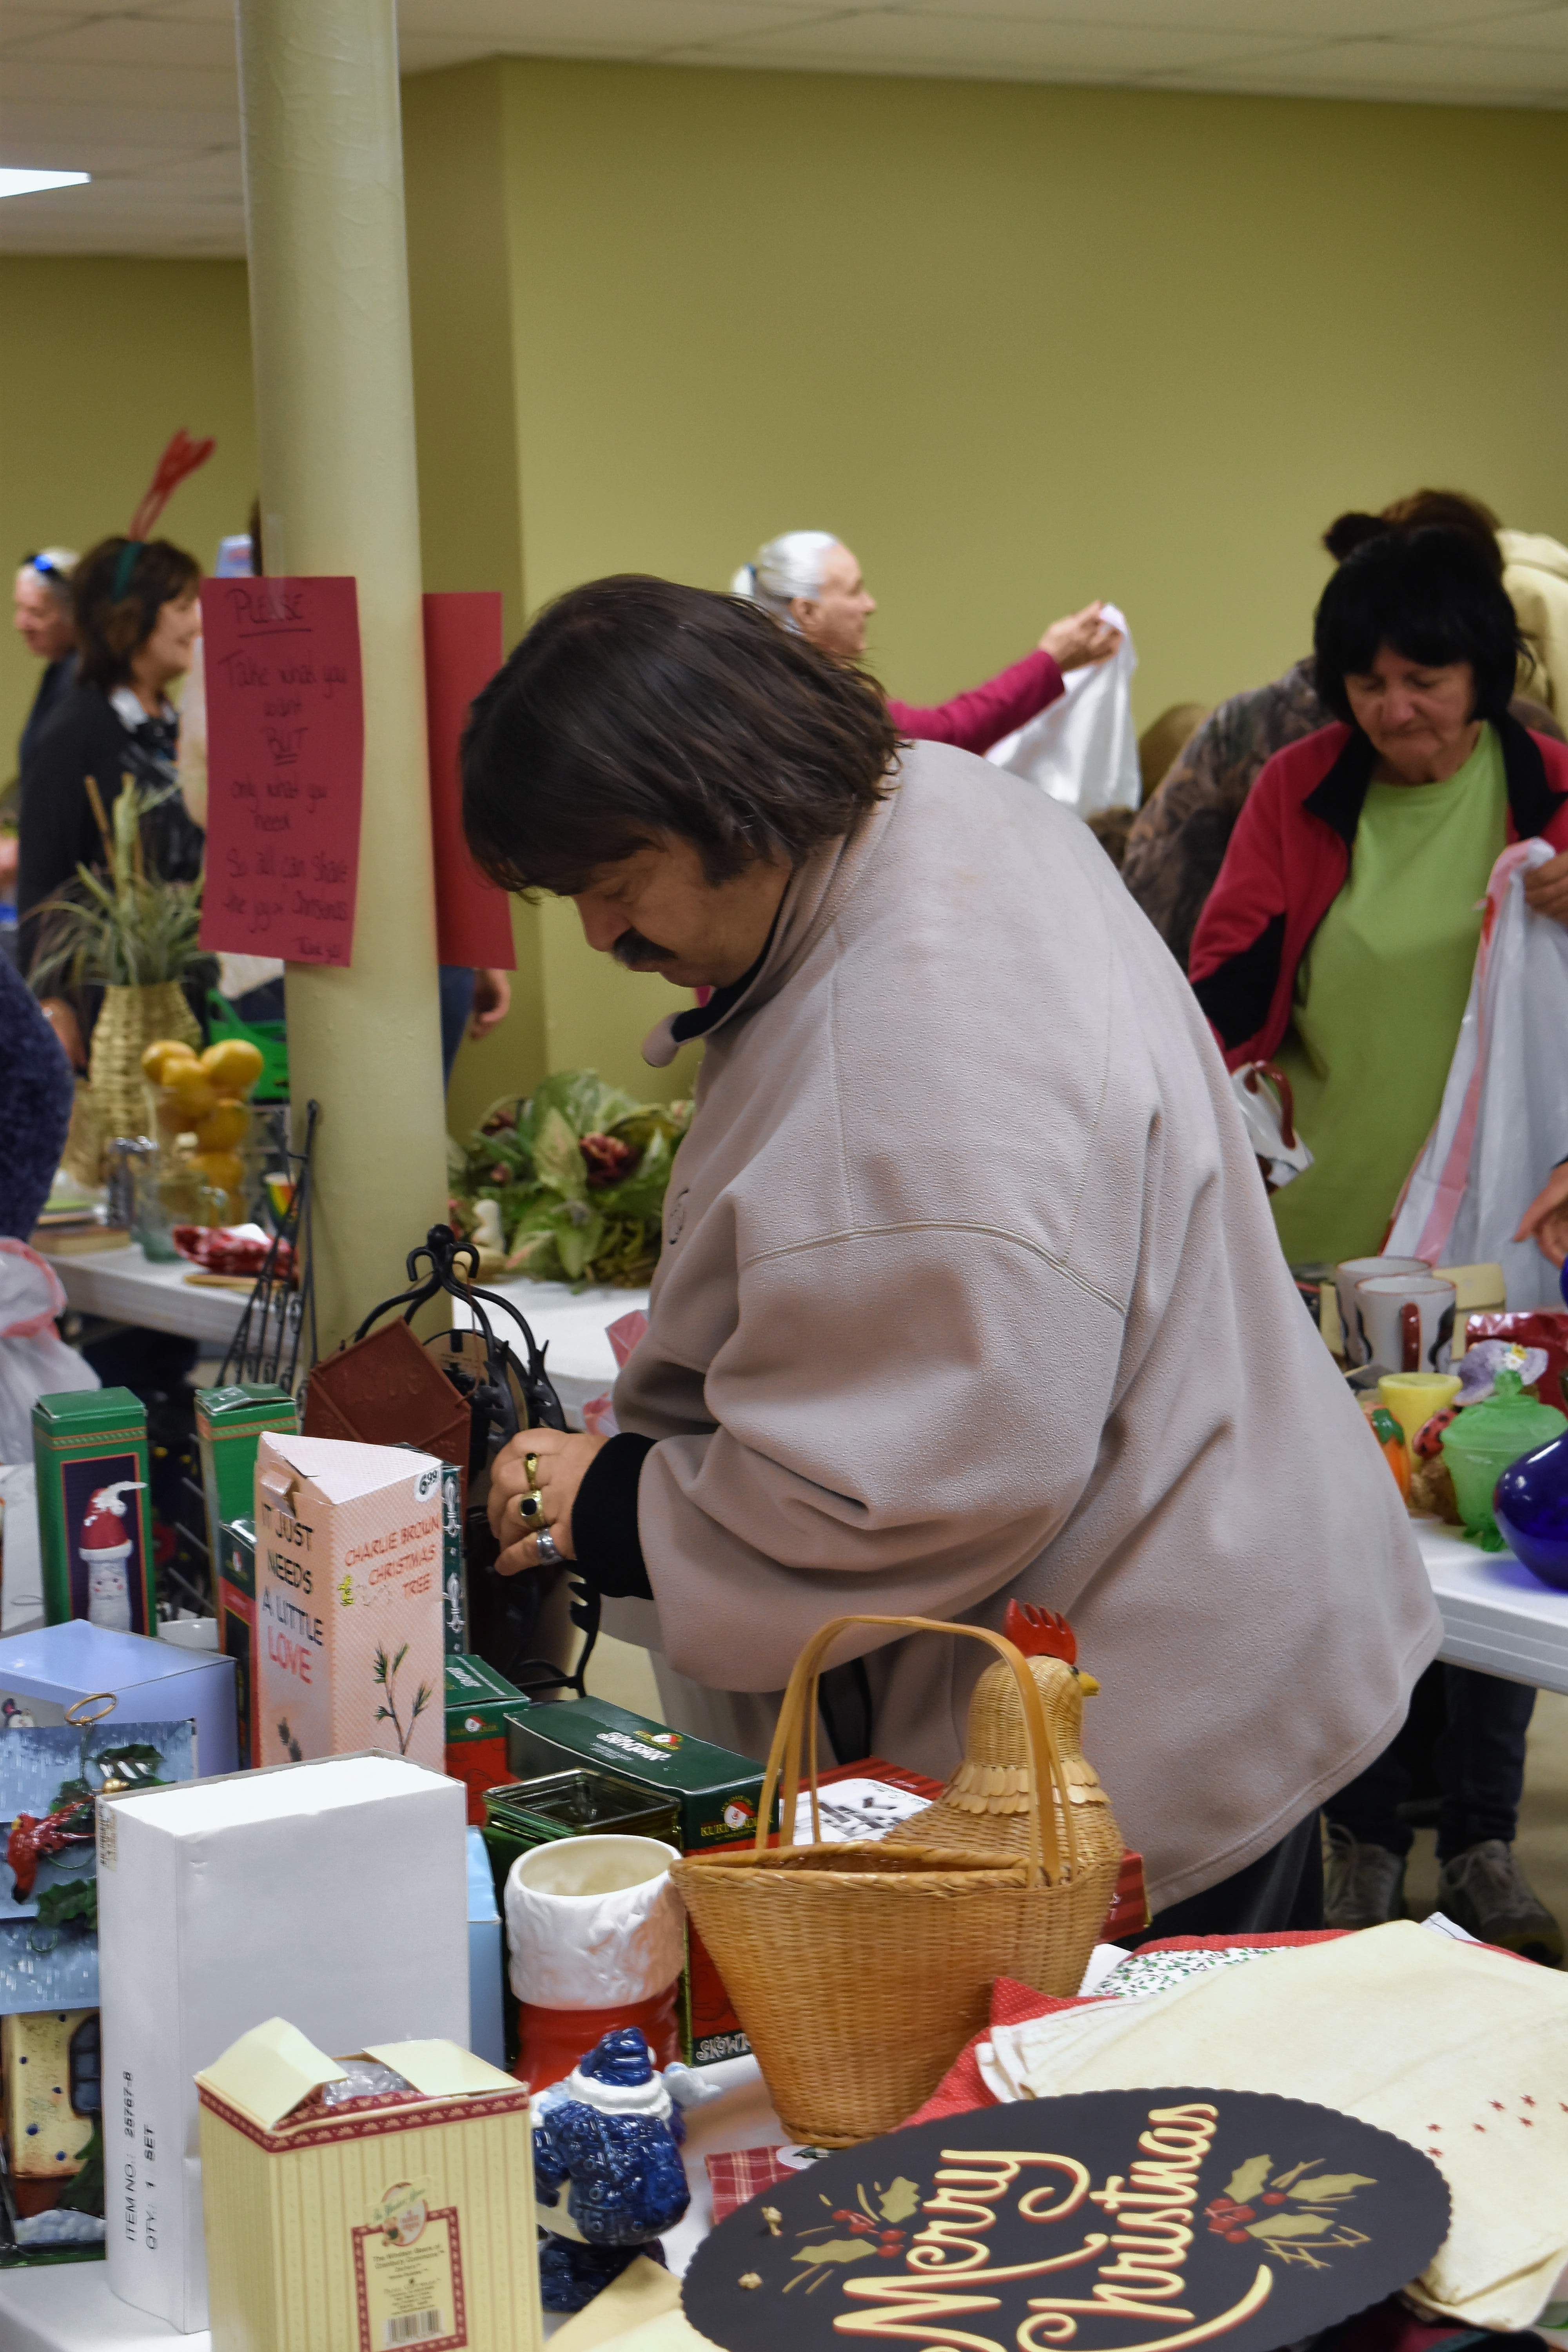 John Rand of Eldorado looks through some of the items available at Star General Baptist Church's Christmas giveaway Monday in Eldorado.